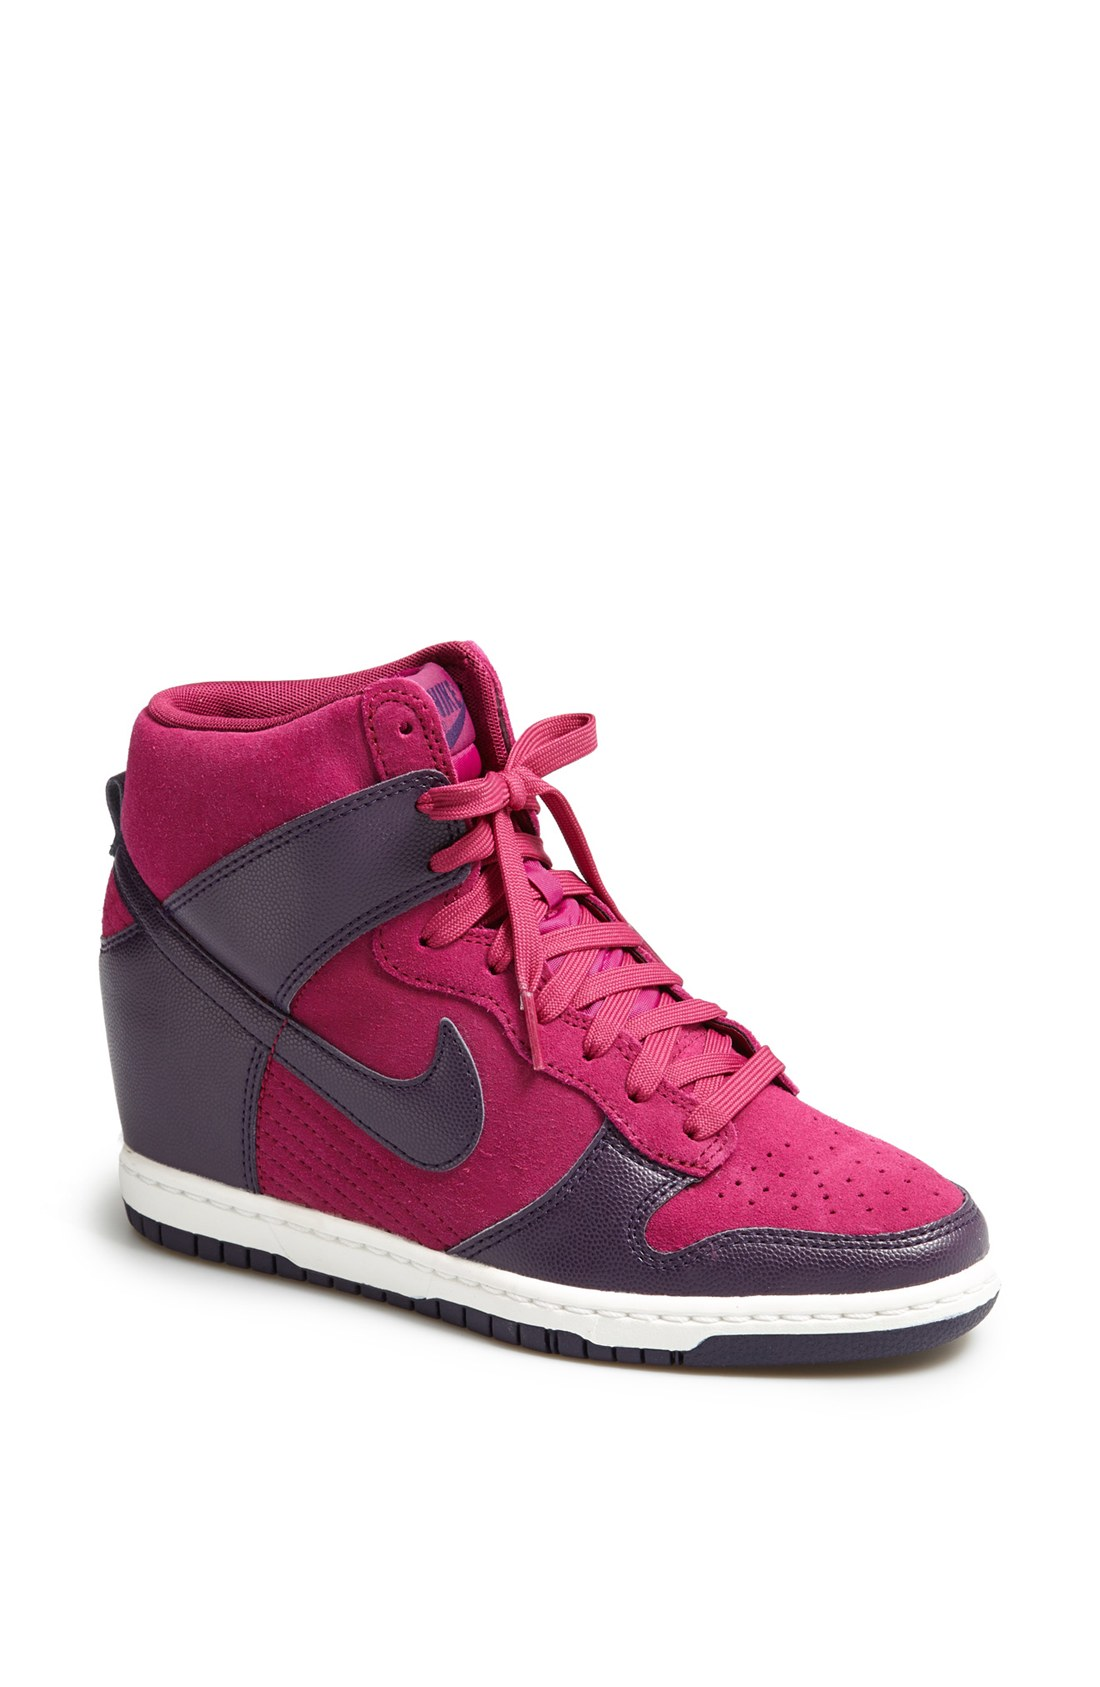 nike dunk sky hi wedge sneaker in purple purple dynasty purple dynasty lyst. Black Bedroom Furniture Sets. Home Design Ideas